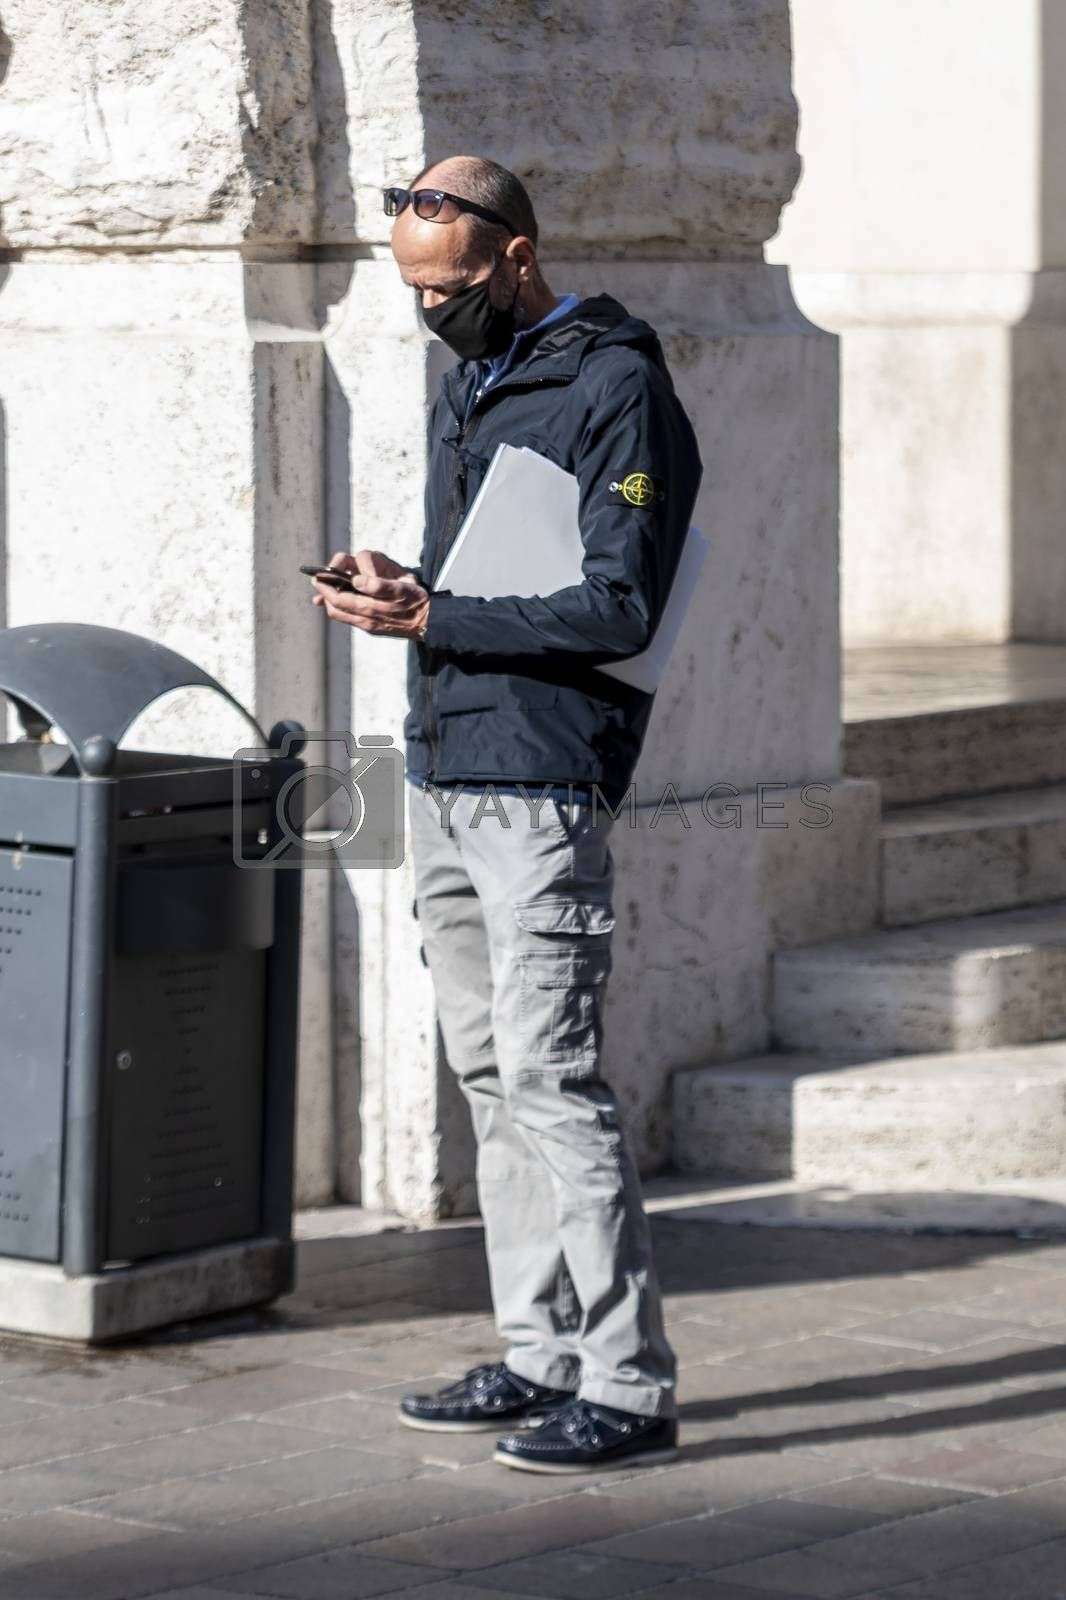 terni,italy october 21 2020:businessman looking at phone